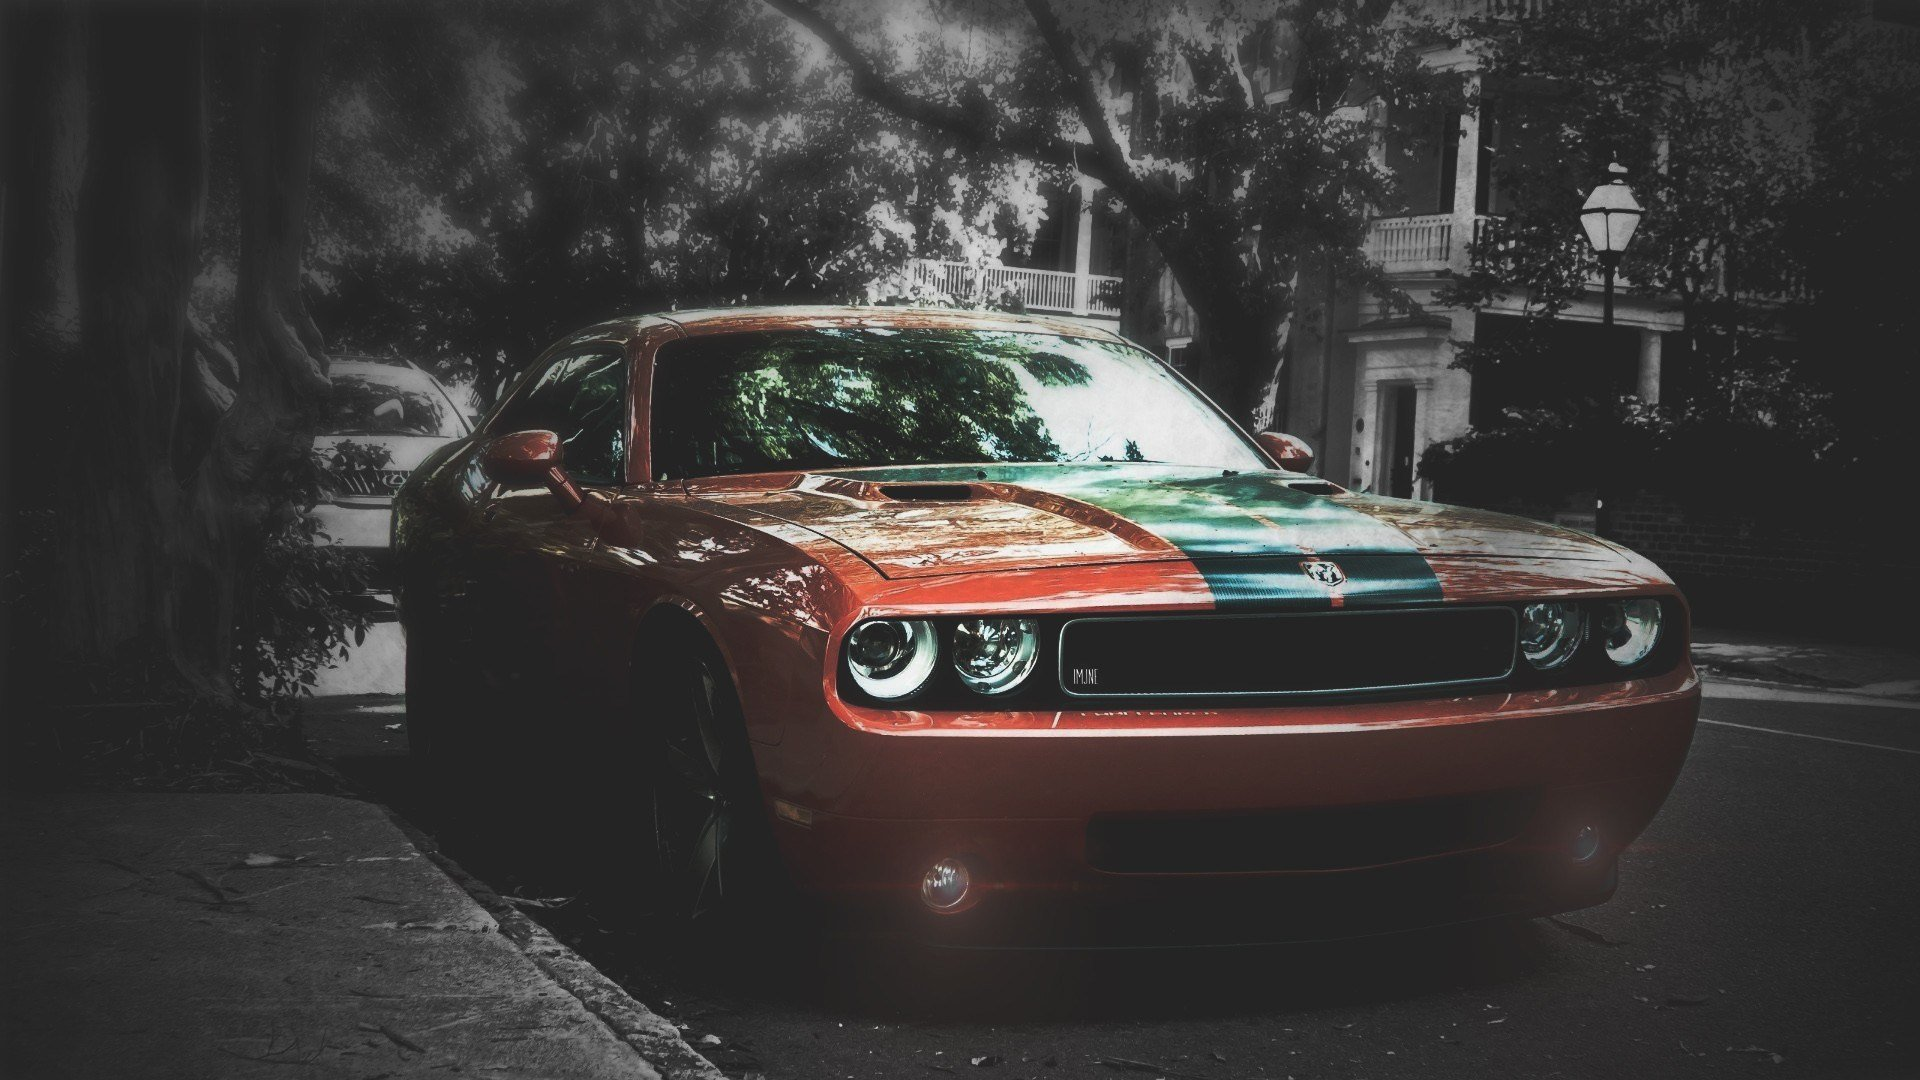 New Car Blurred Dodge Challenger Srt Wallpapers Hd Desktop On This Month